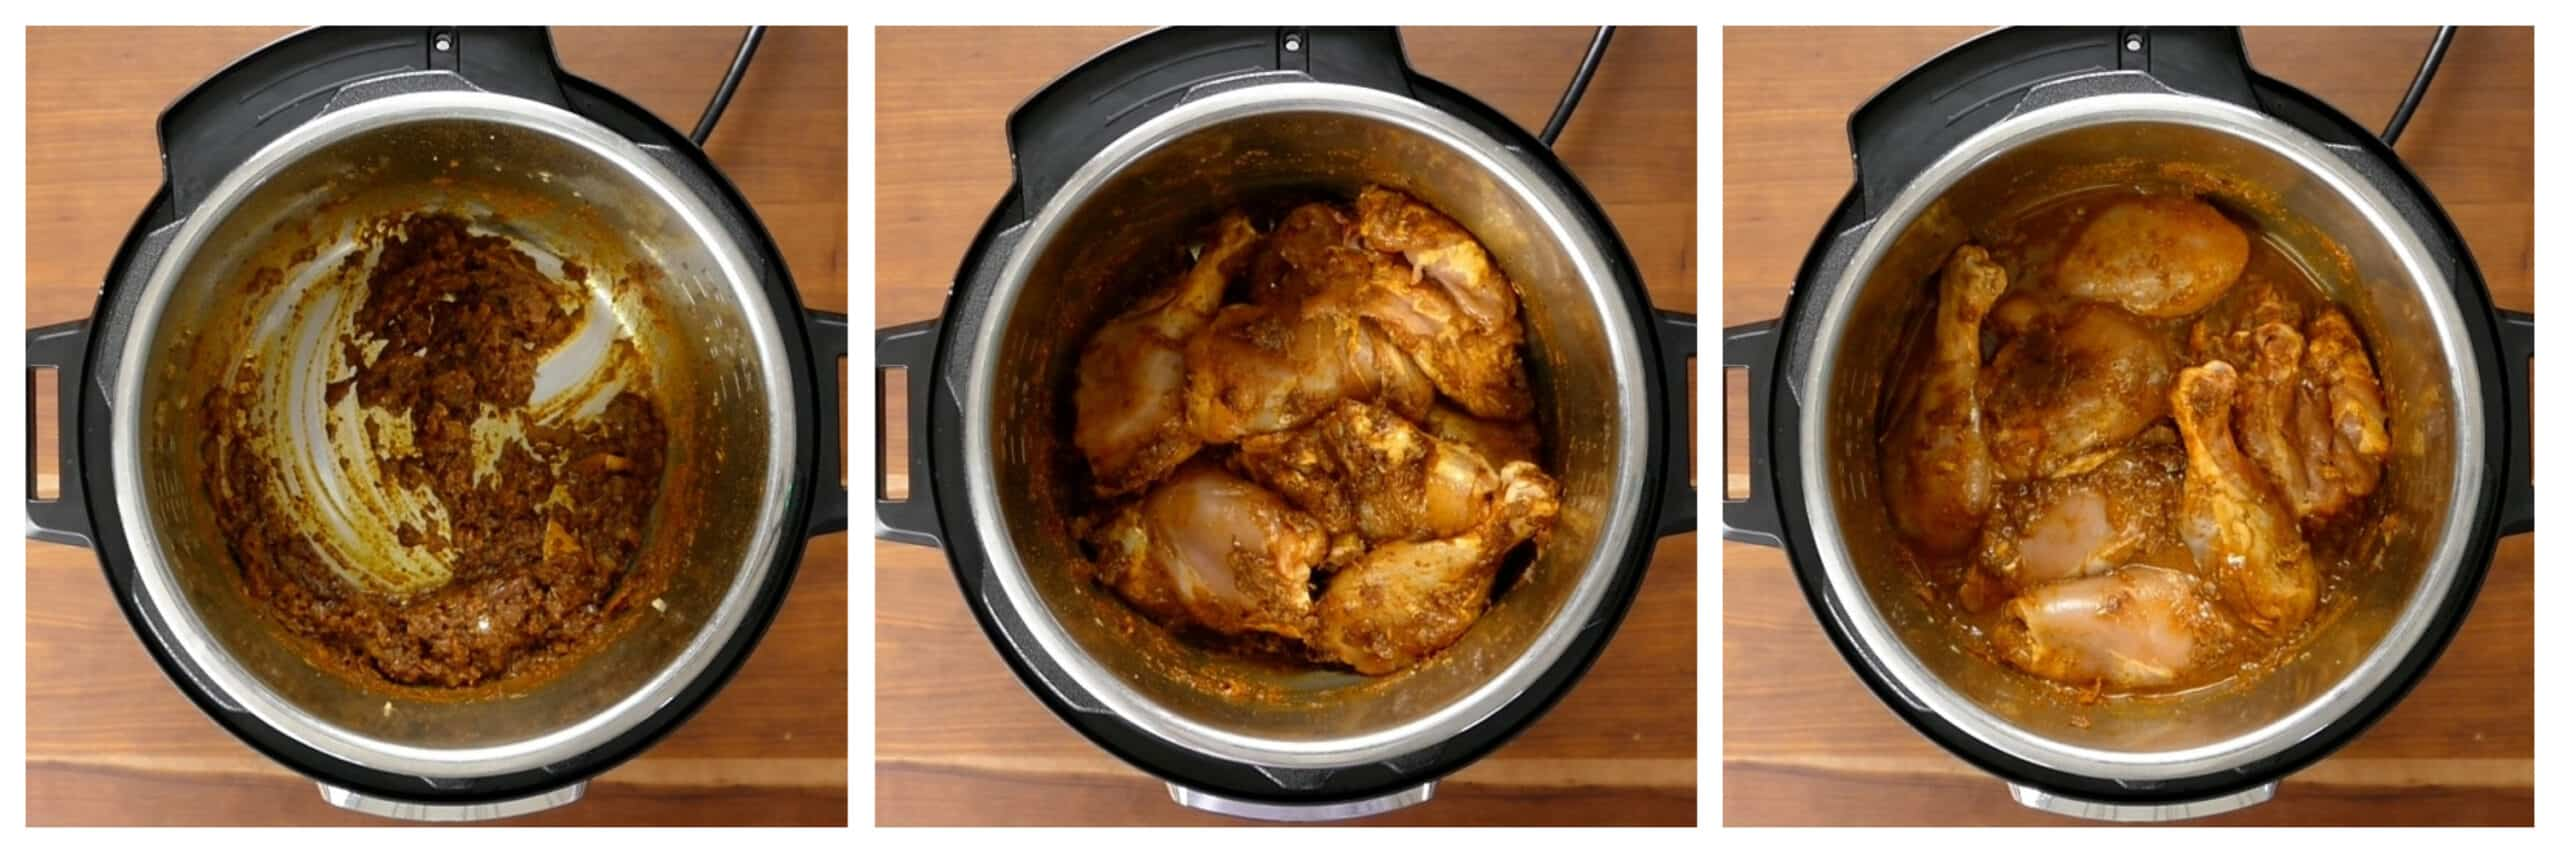 Instant Pot Chicken Curry Instructions - saute spices, chicken, water